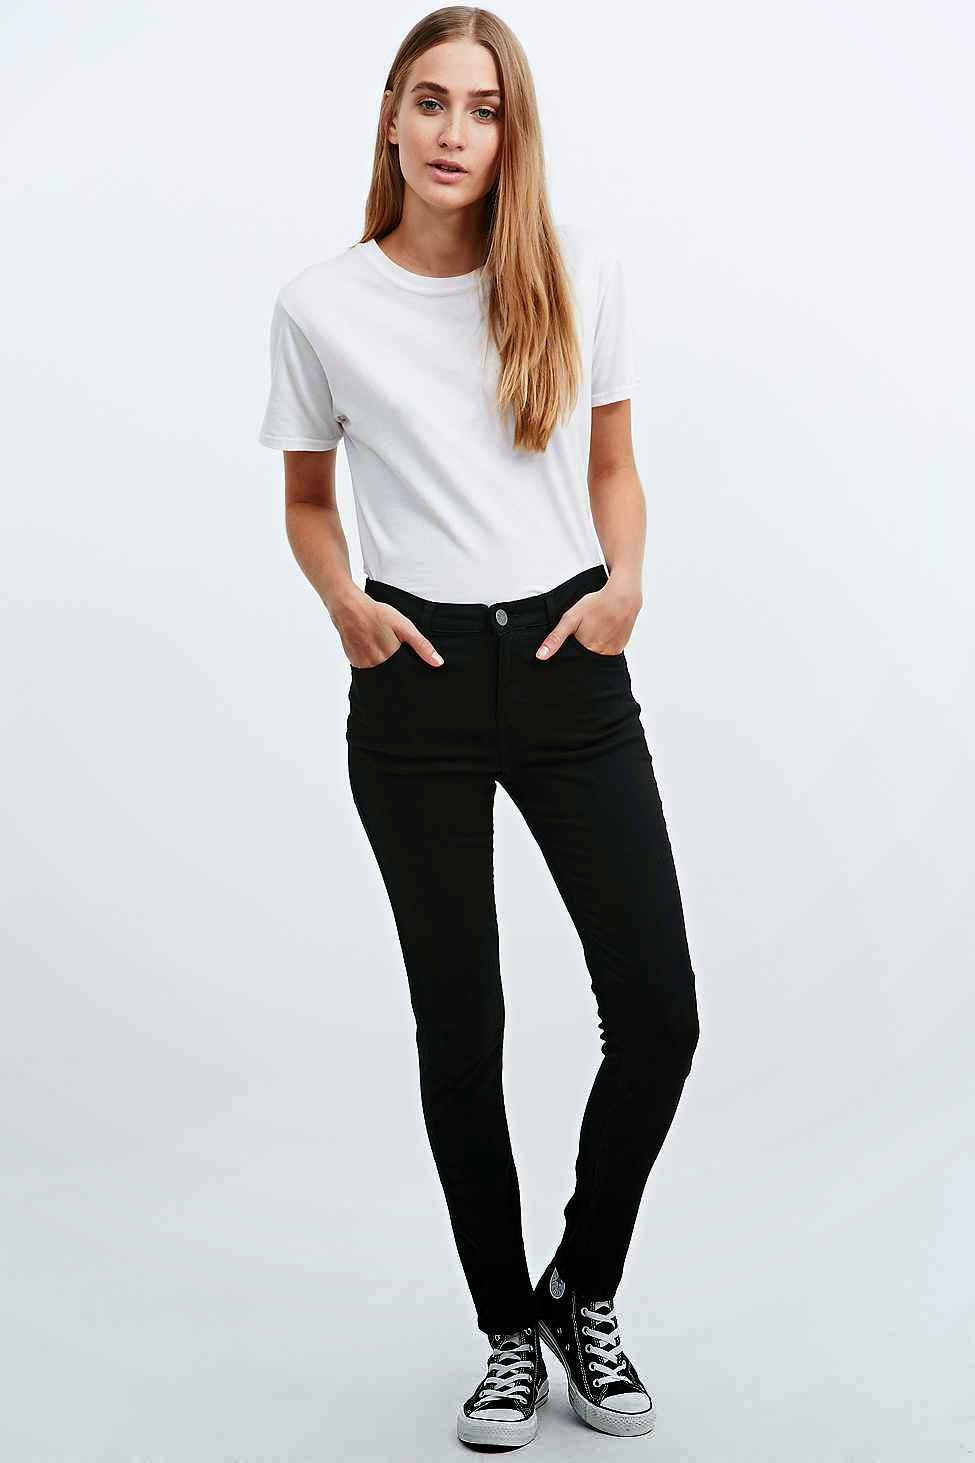 urban outfitters black jeans, BDG black skinny jeans,